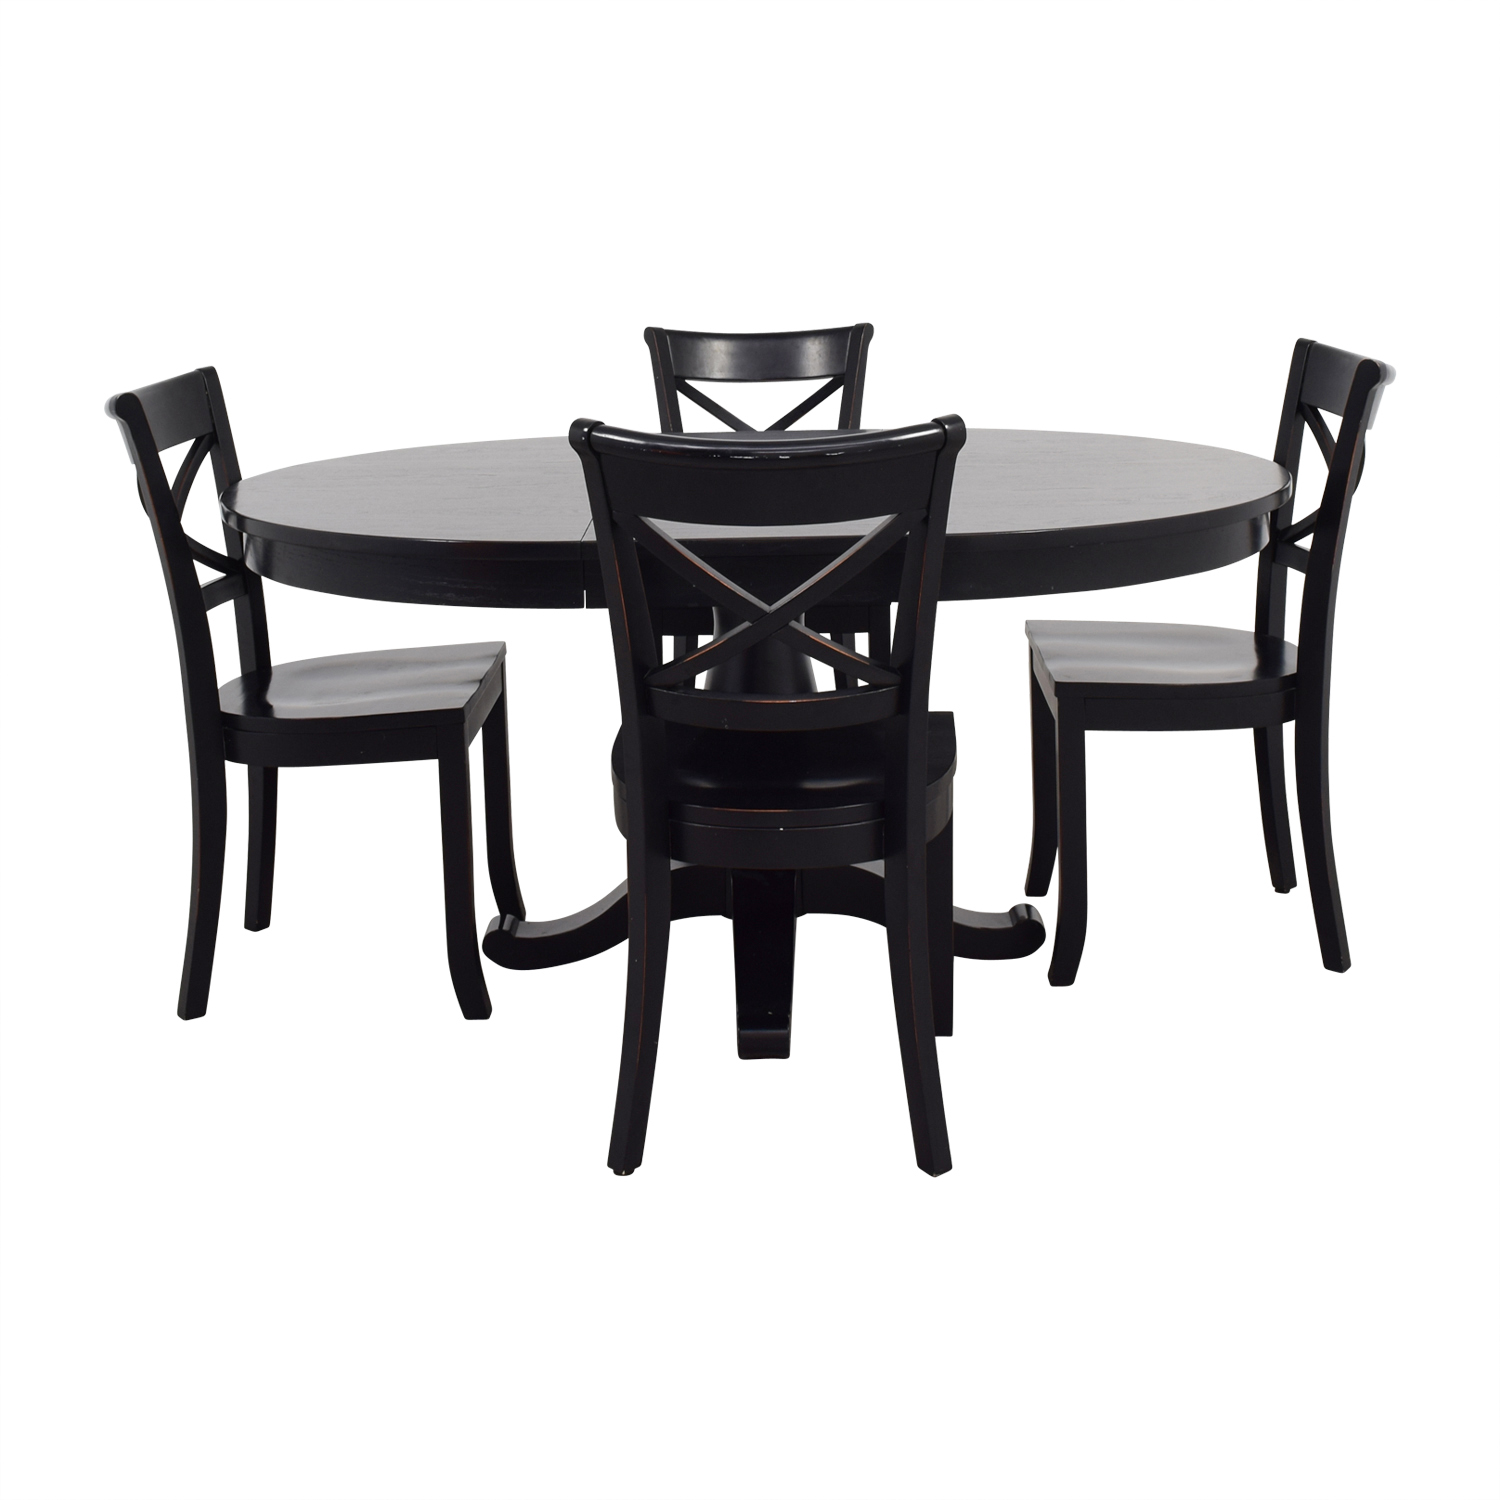 Crate & Barrel Crate & Barrel Avalon Black Dining Set Sofas